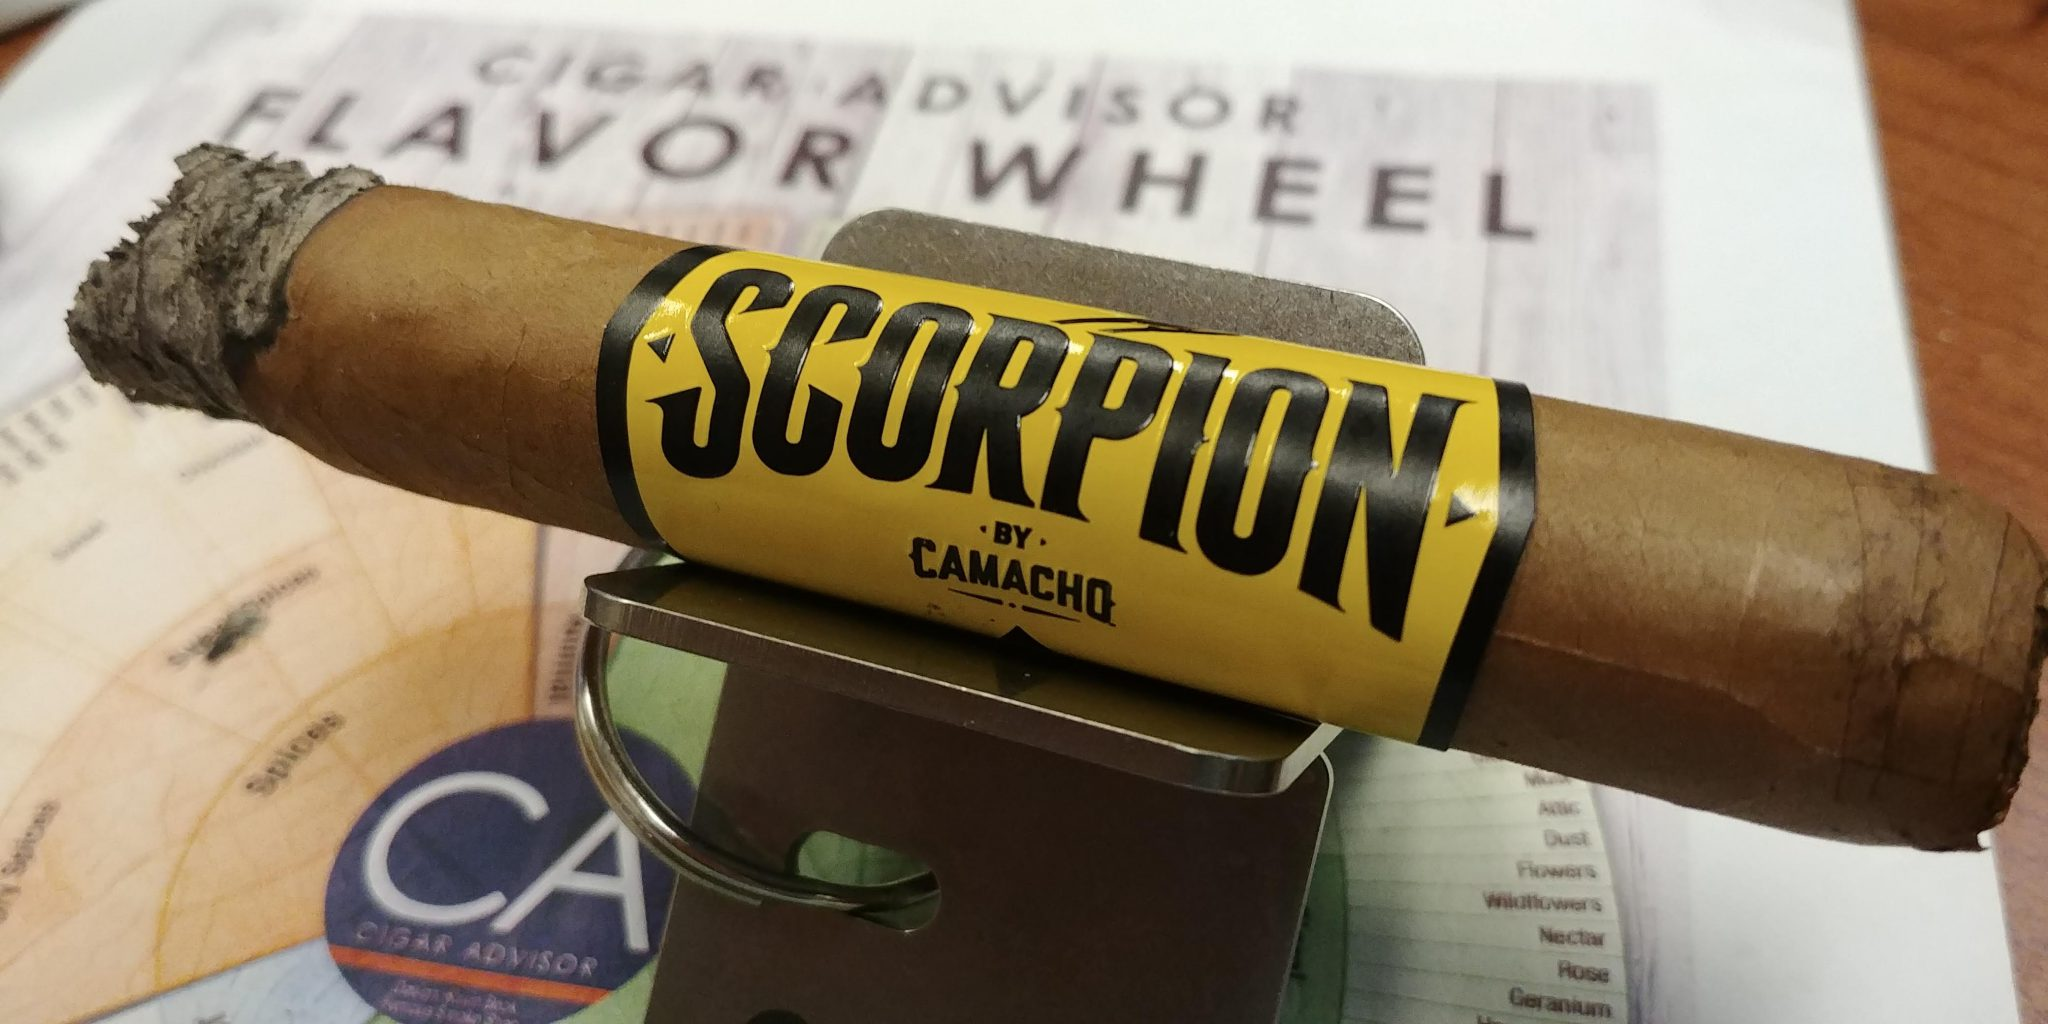 Camacho scorpion connecticut cigar review with cigar flavor wheel at Famous Smoke Shop